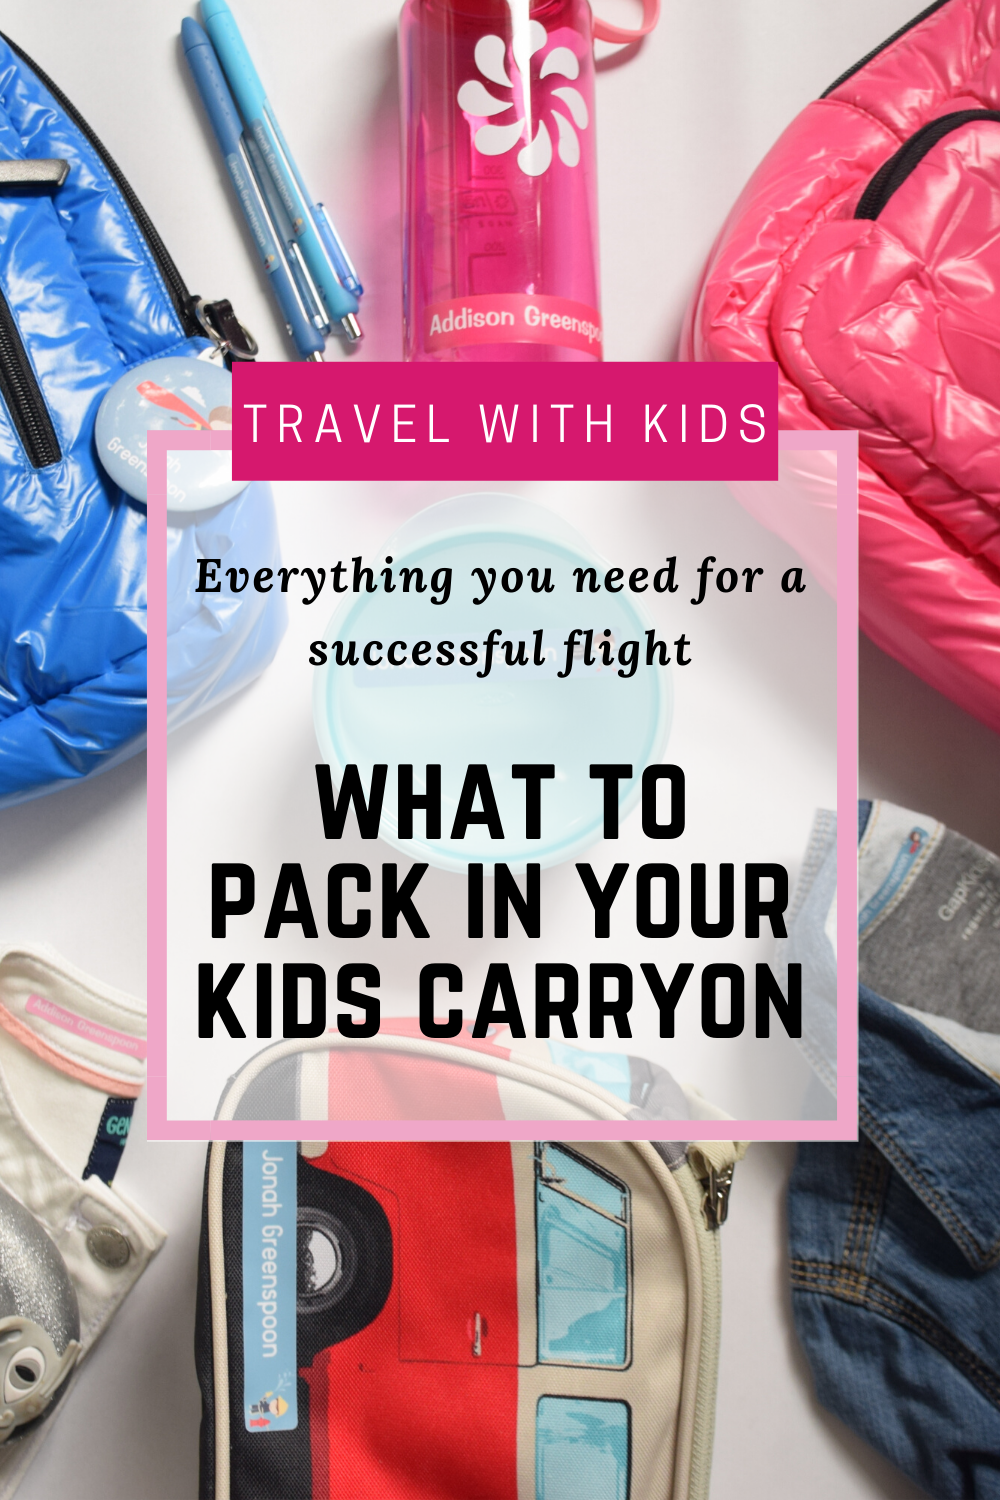 What to pack in your kids carryon